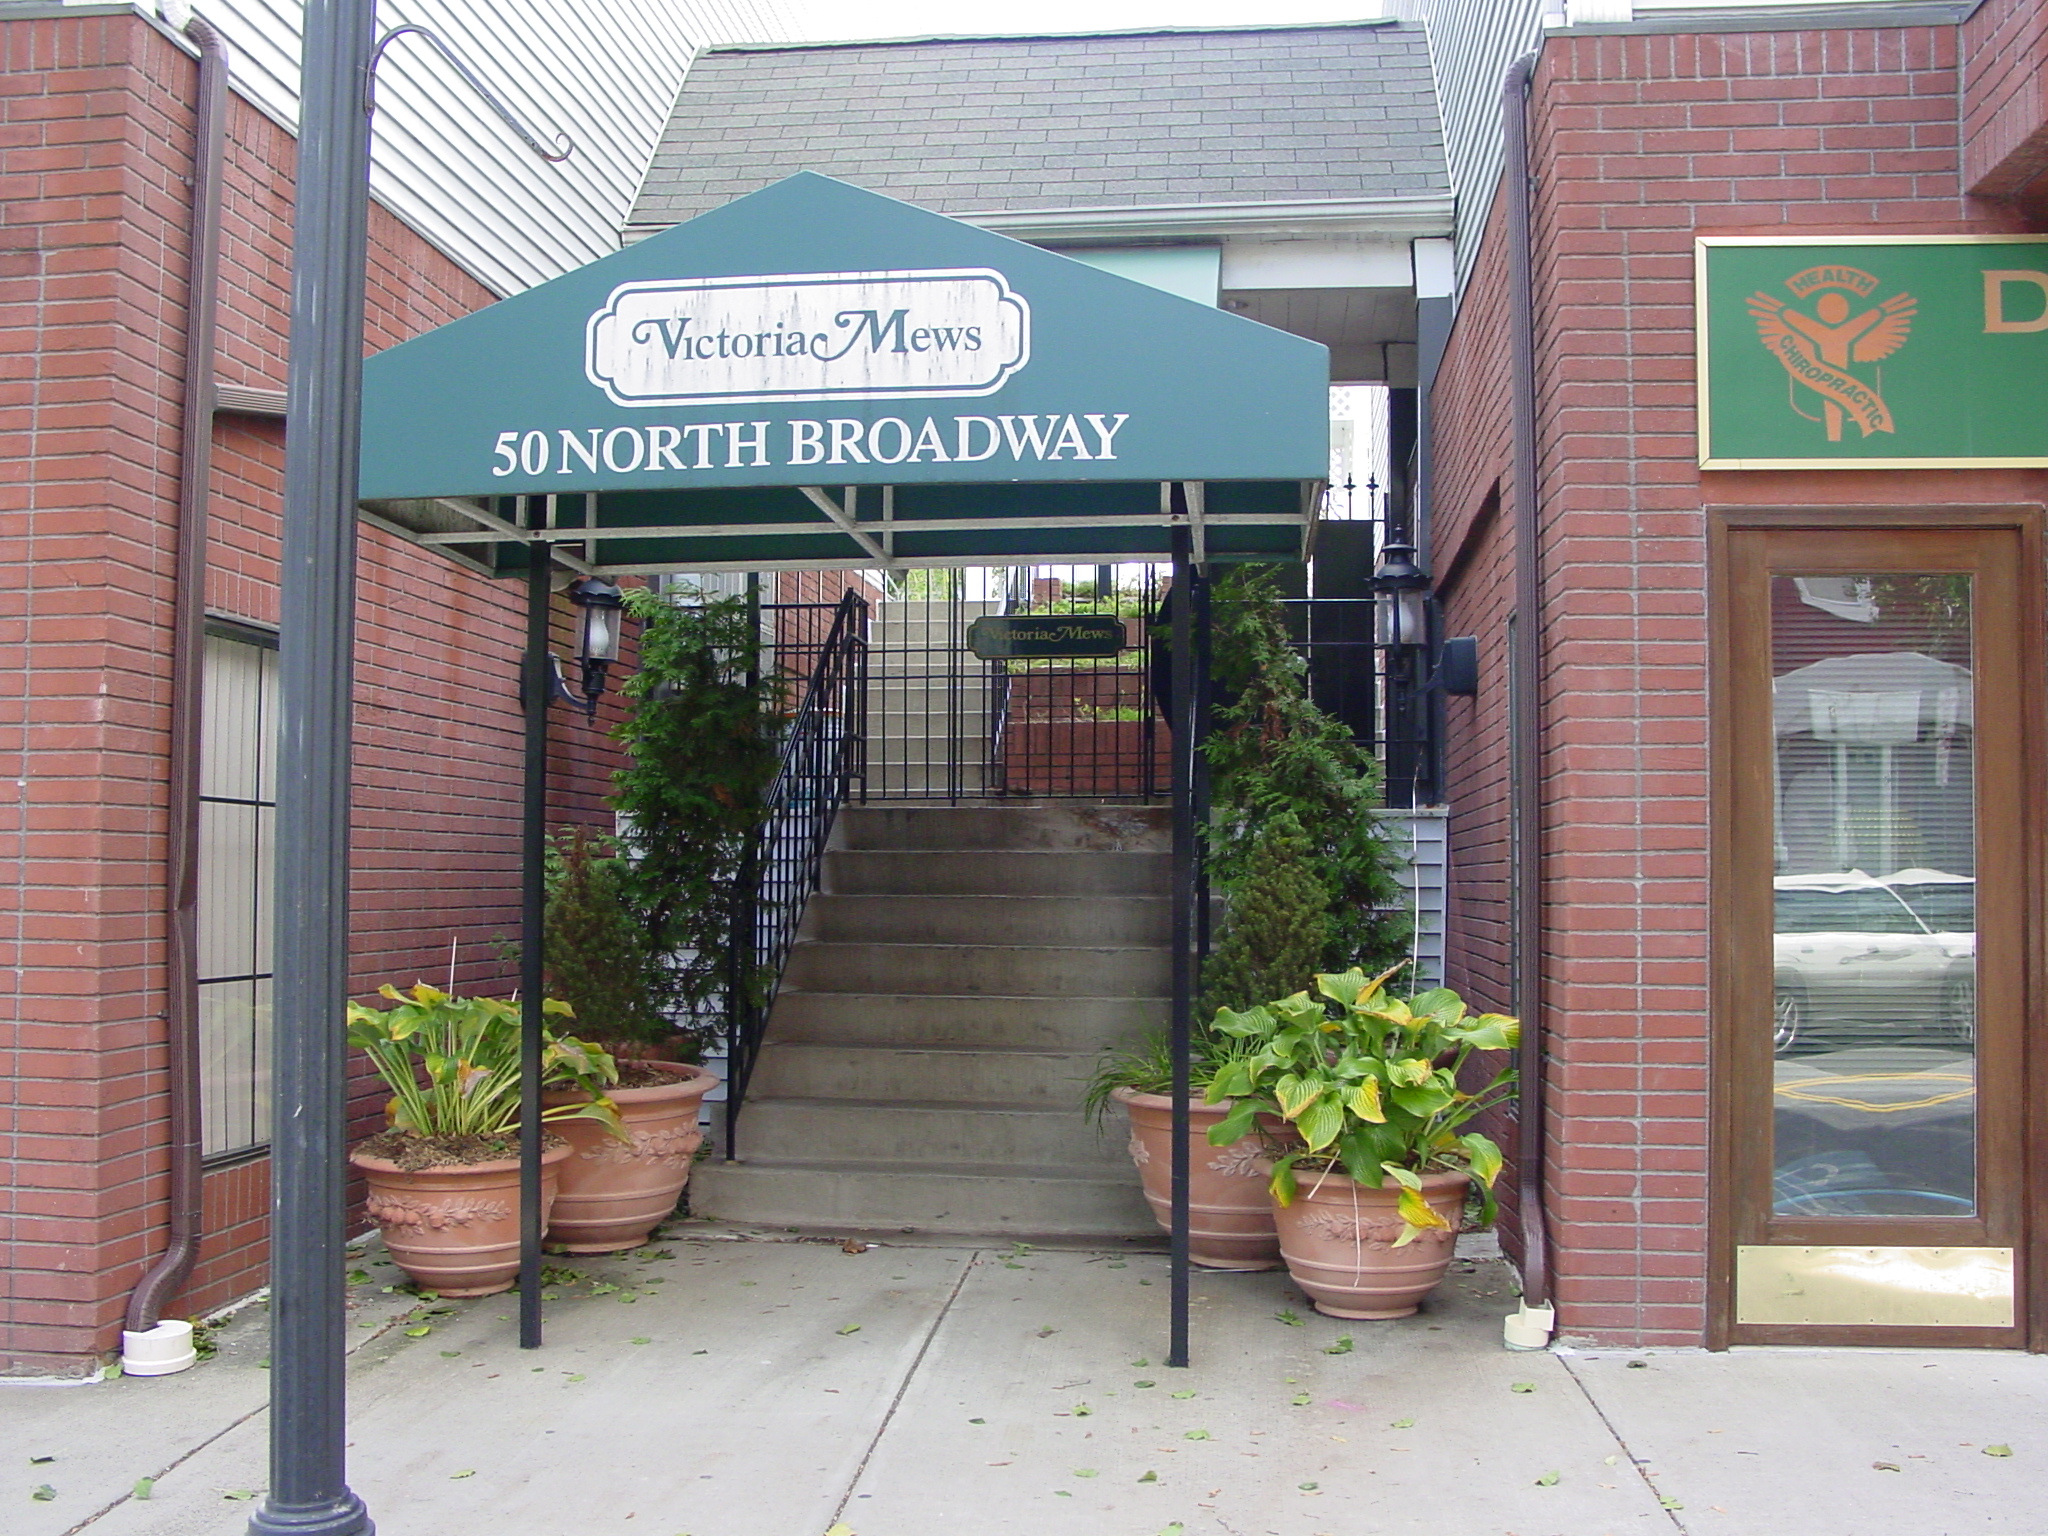 Single Family Home for Sale at Victoria Mews - Sale Pending 50 North Broadway Unit 16 Nyack, New York 10960 United States